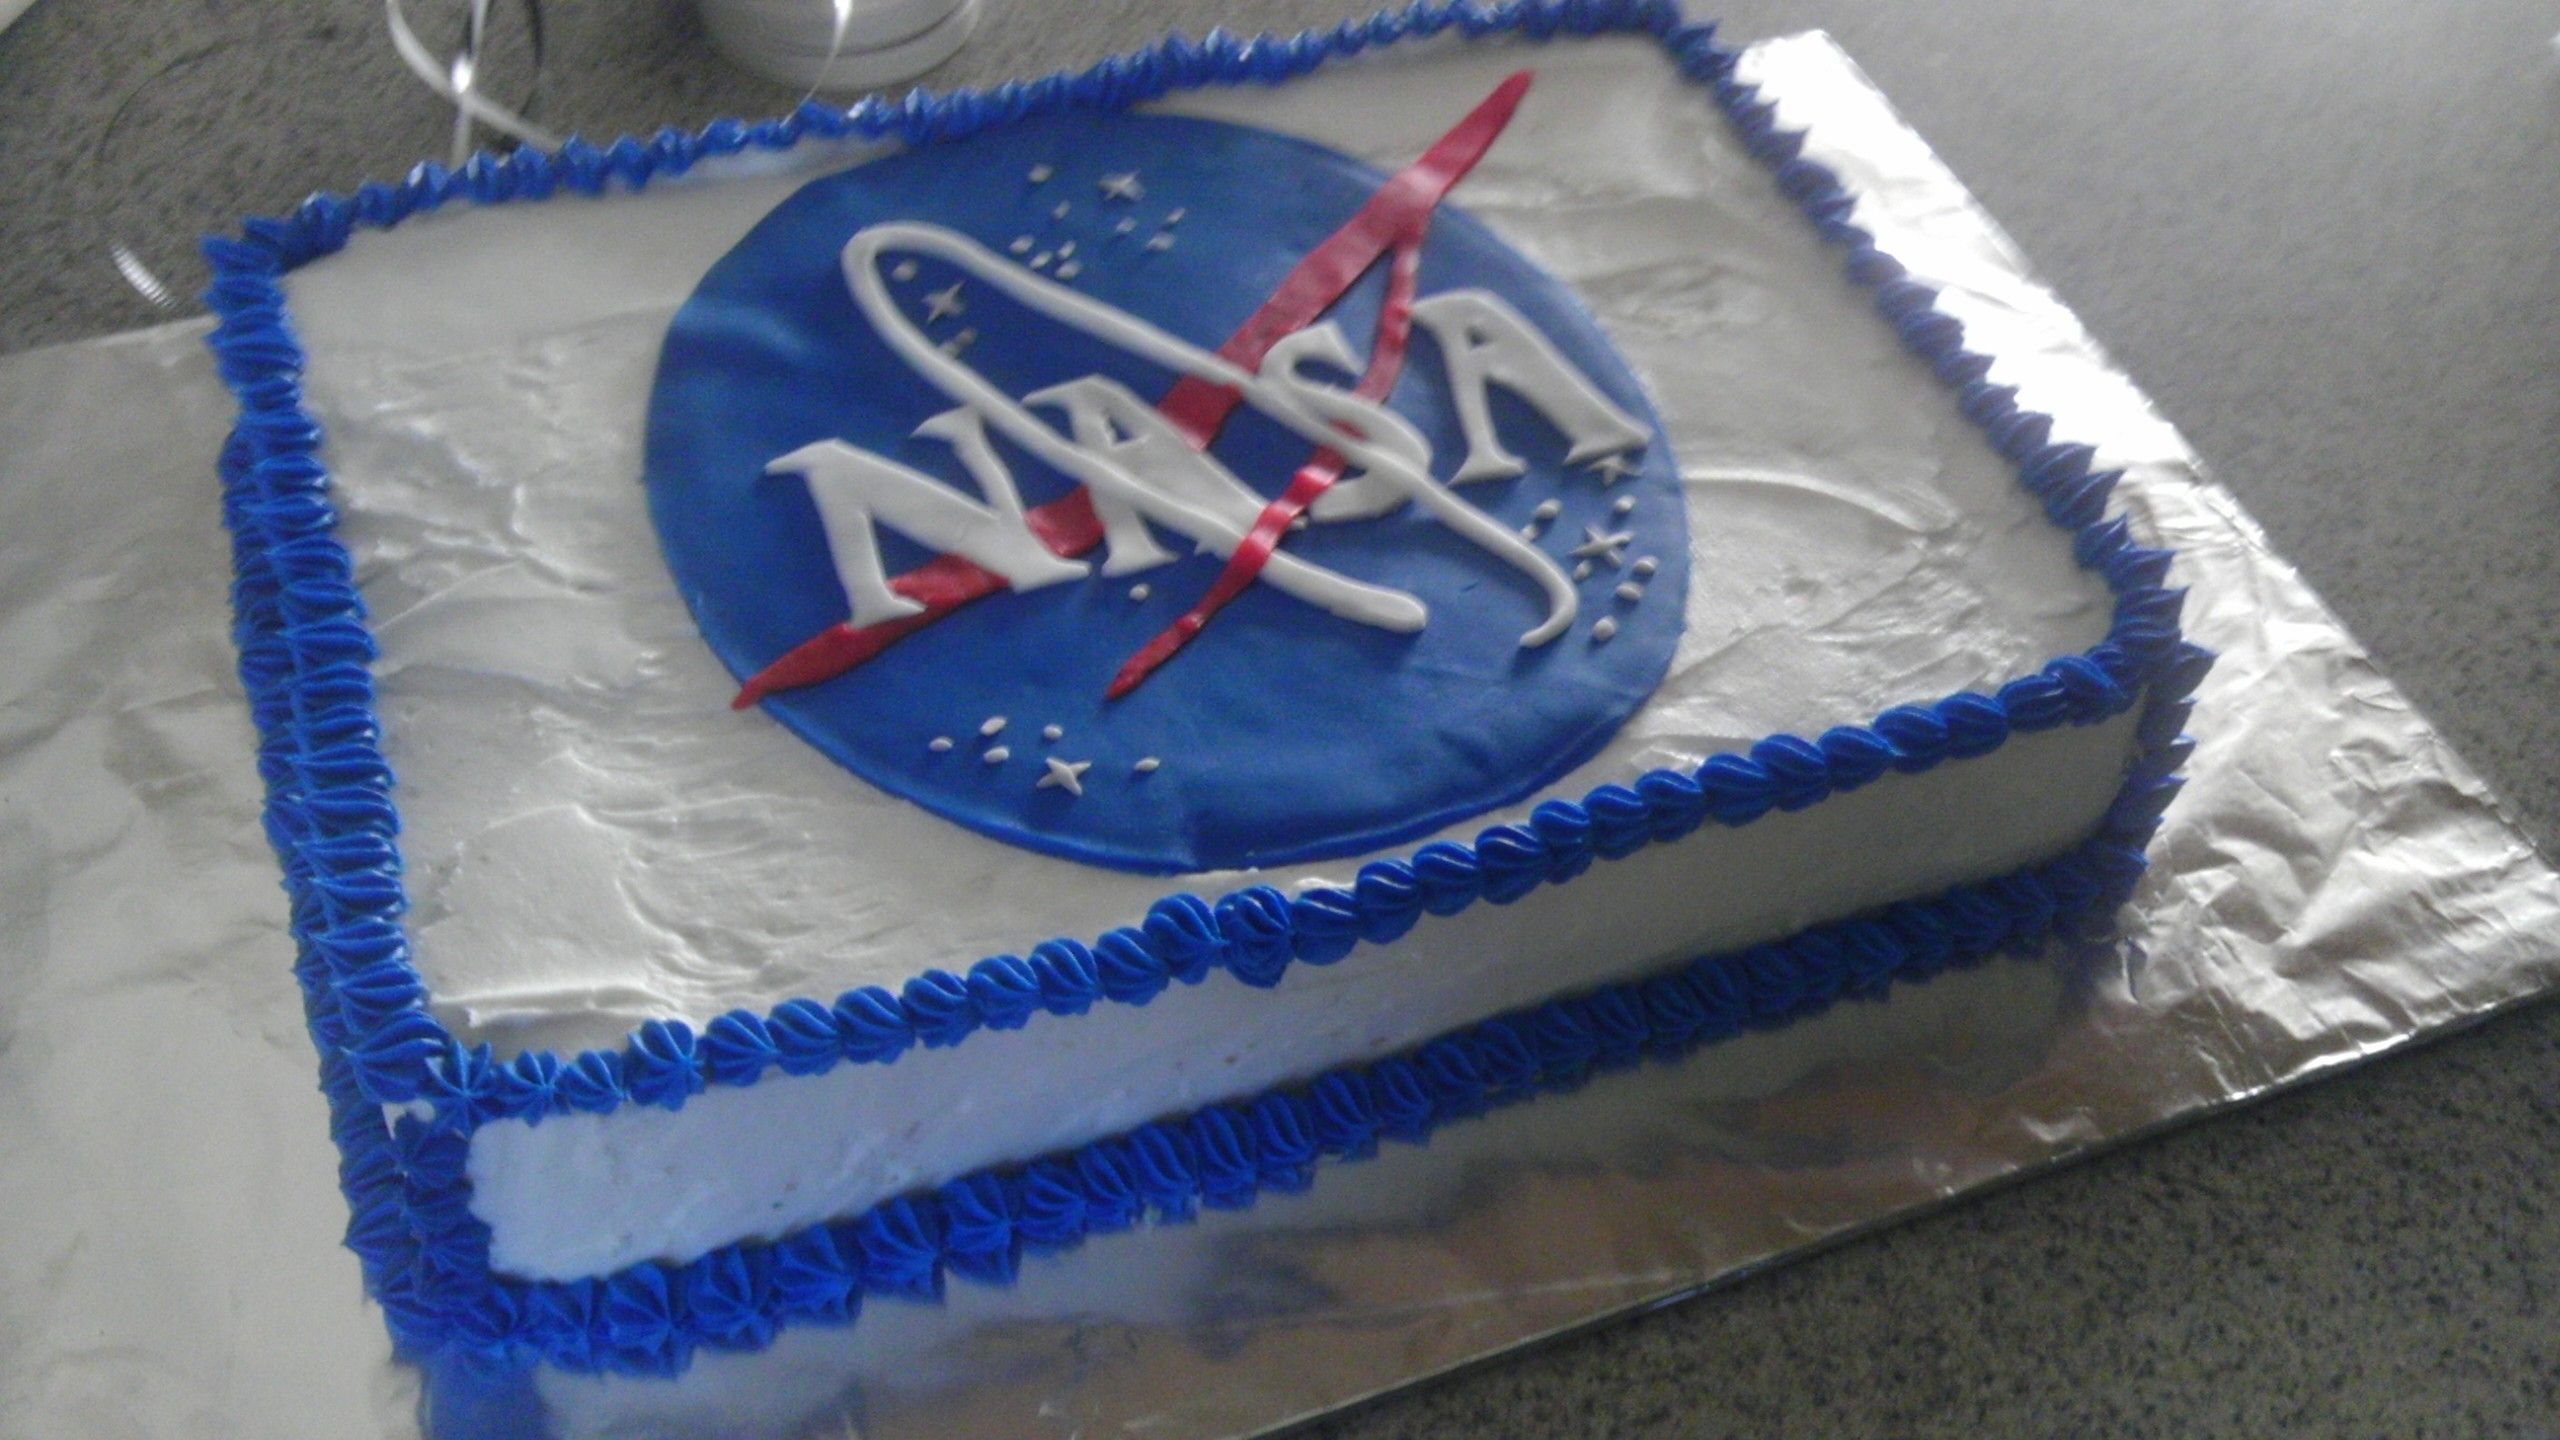 NASA Cake Craig's first MoniCakes Pinterest